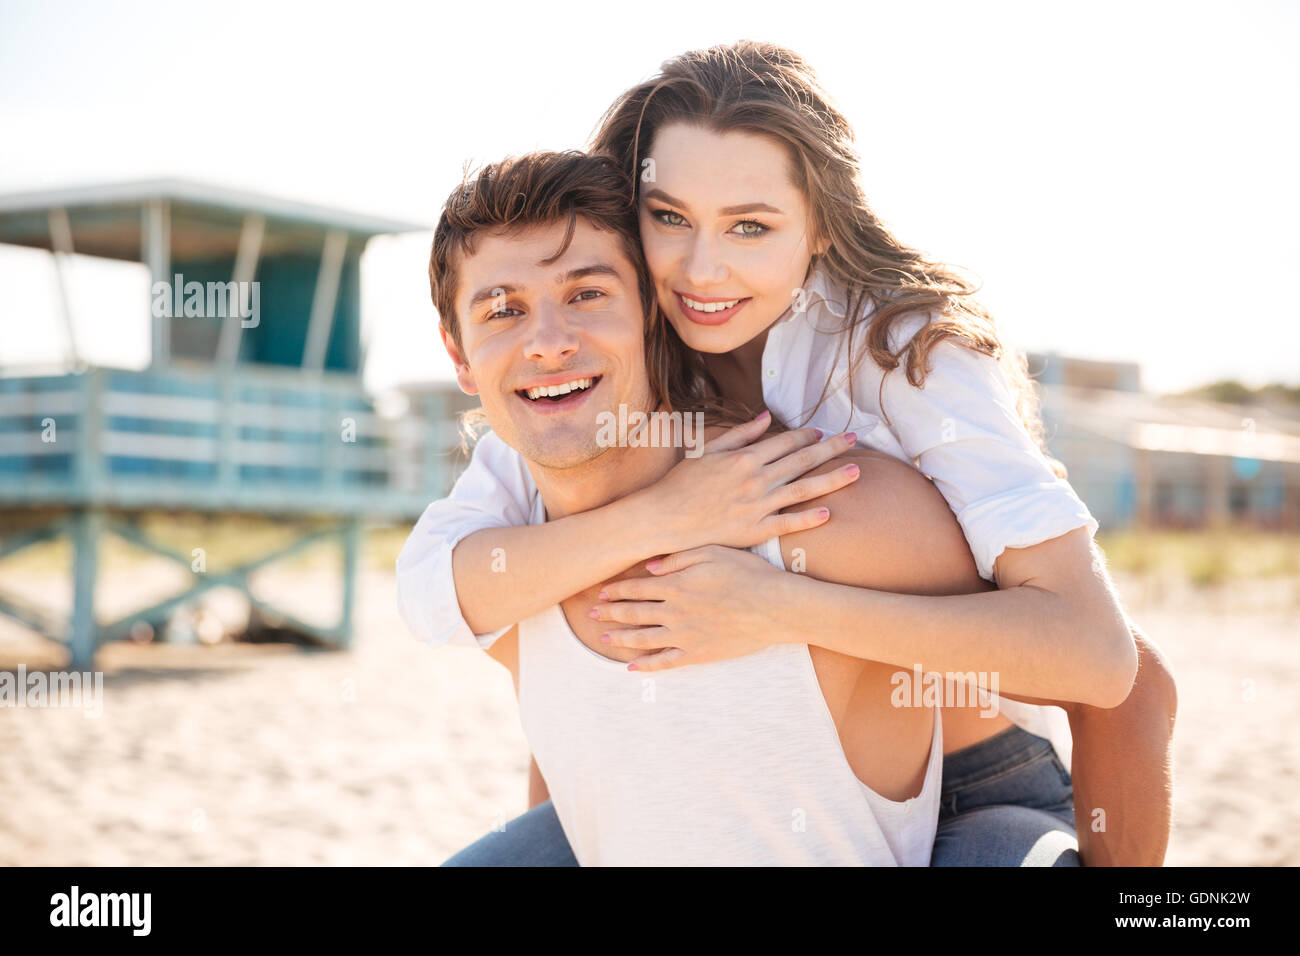 Portrait of cheerful young man piggybacking his girlfriend on the beach - Stock Image